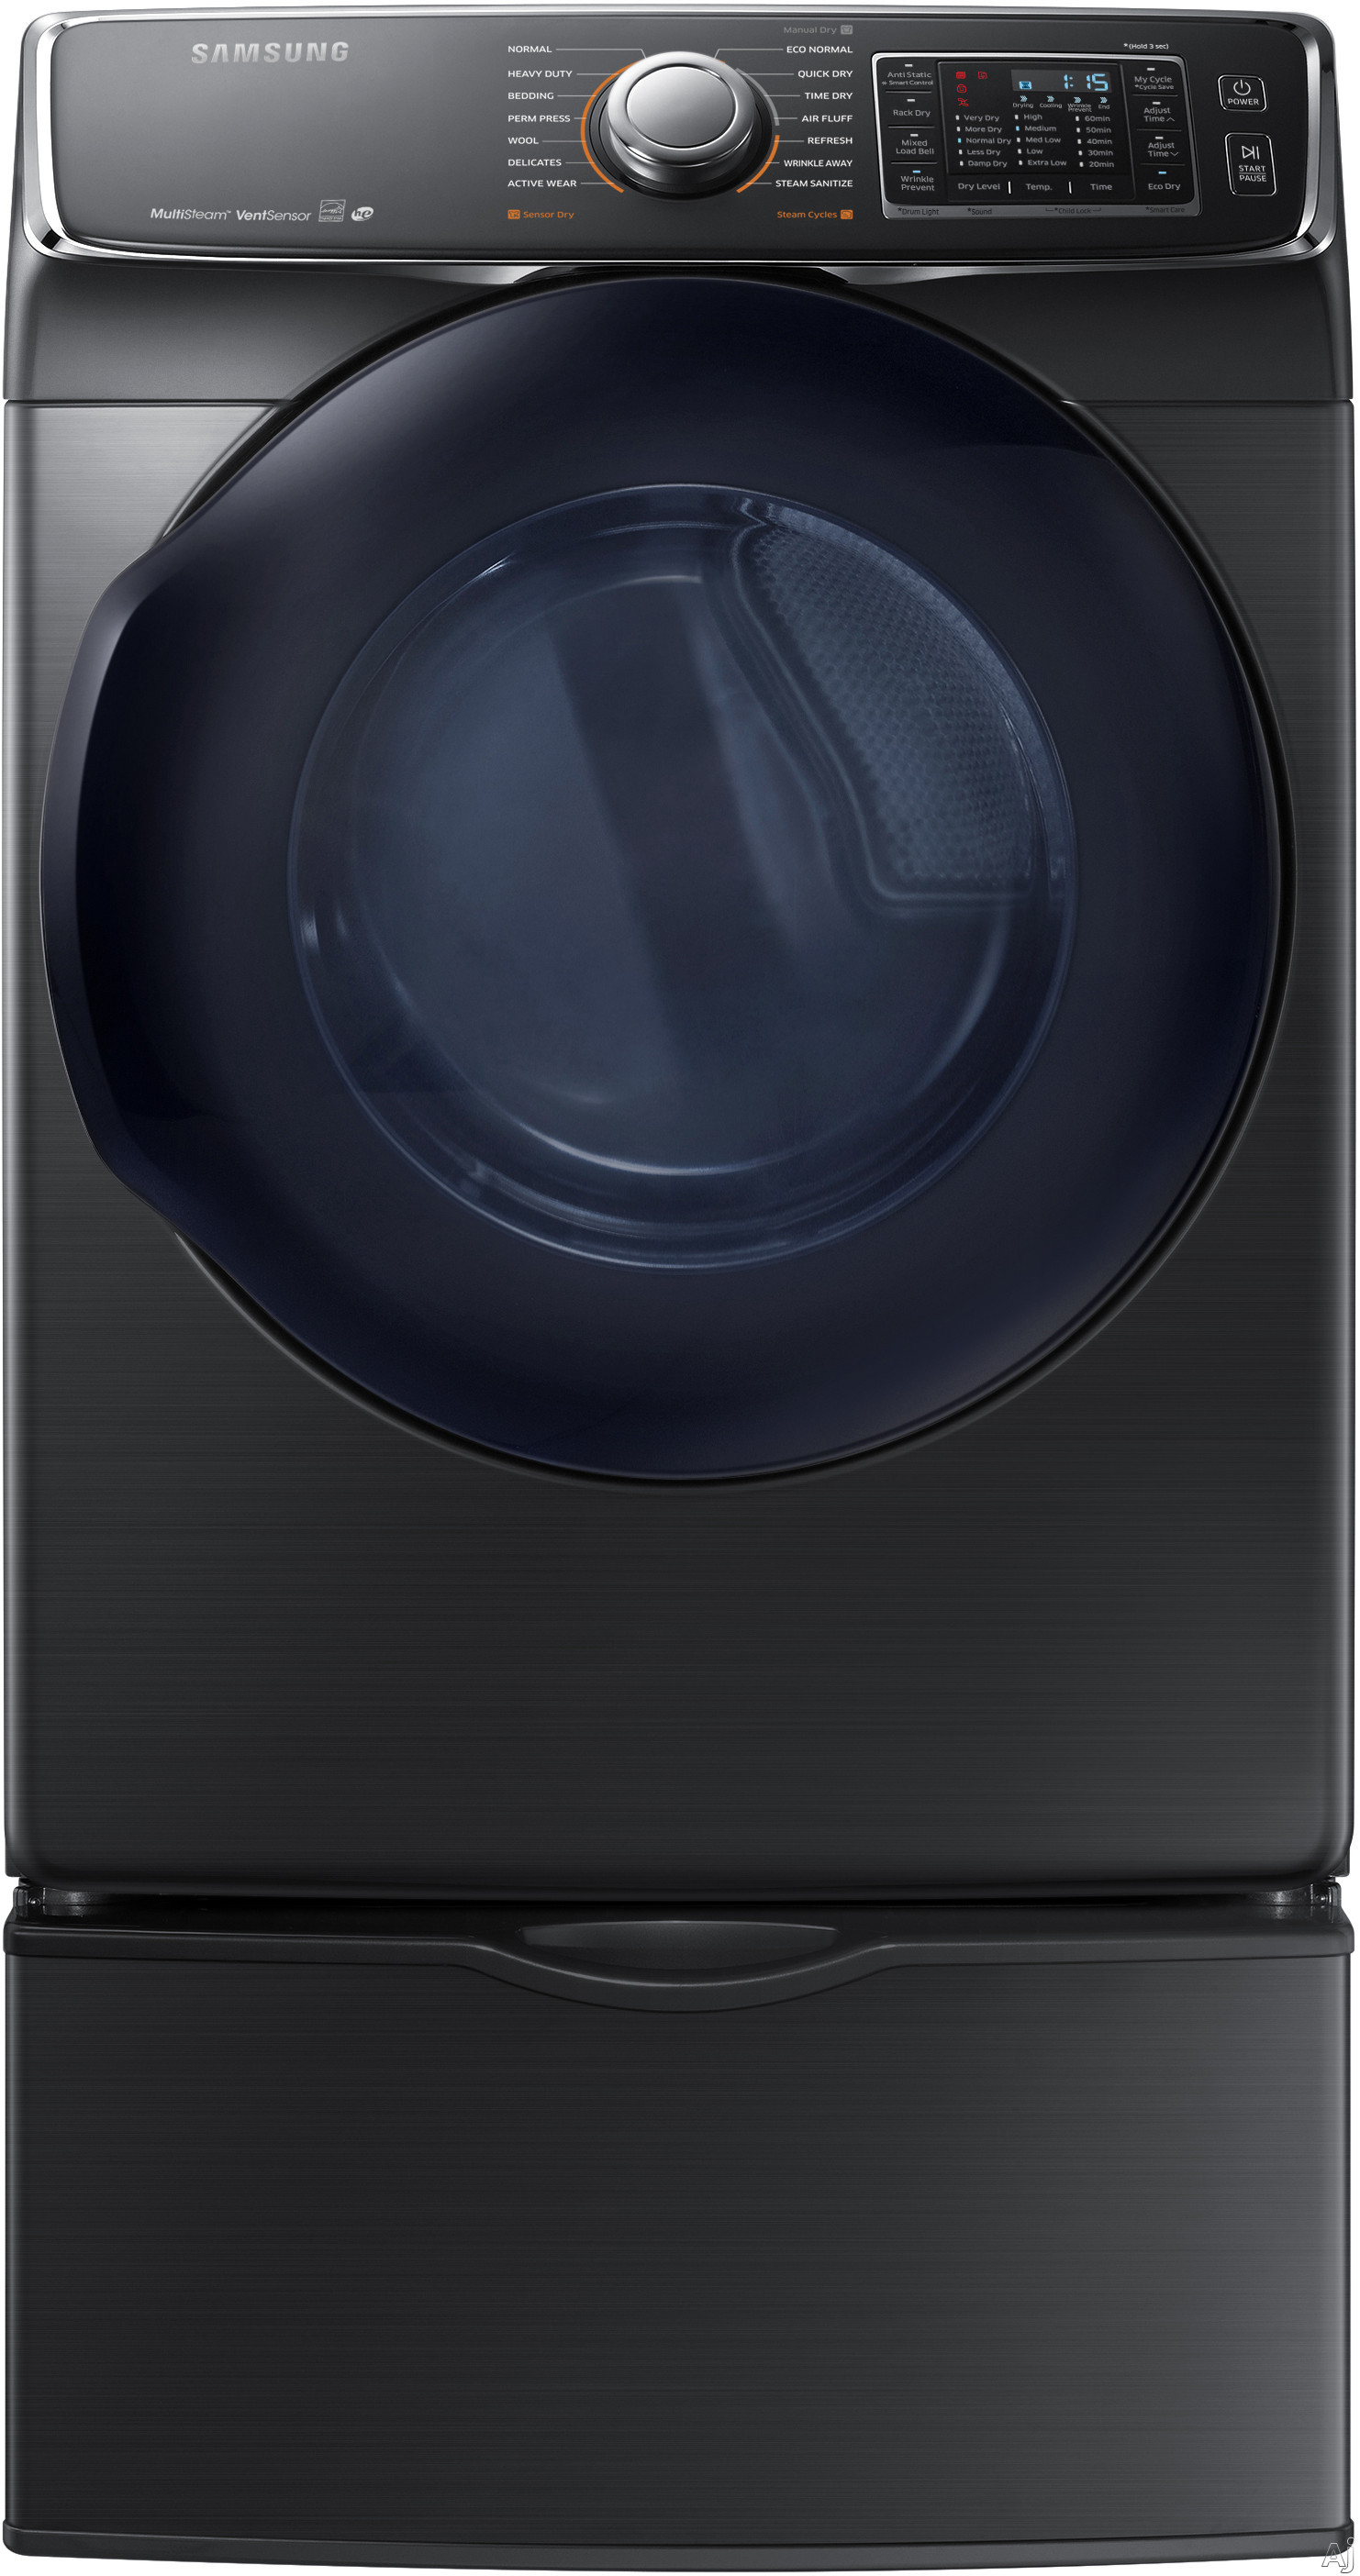 Samsung DV50K7500G 27 Inch 7.5 cu. ft. Gas Dryer with 14 Dry Cycles, 12 Options, 5 Temperature Selections, Multi-Steam, Eco Dry, Smart Care, Vent Sensor, Dryer Rack and ENERGY STAR Rated